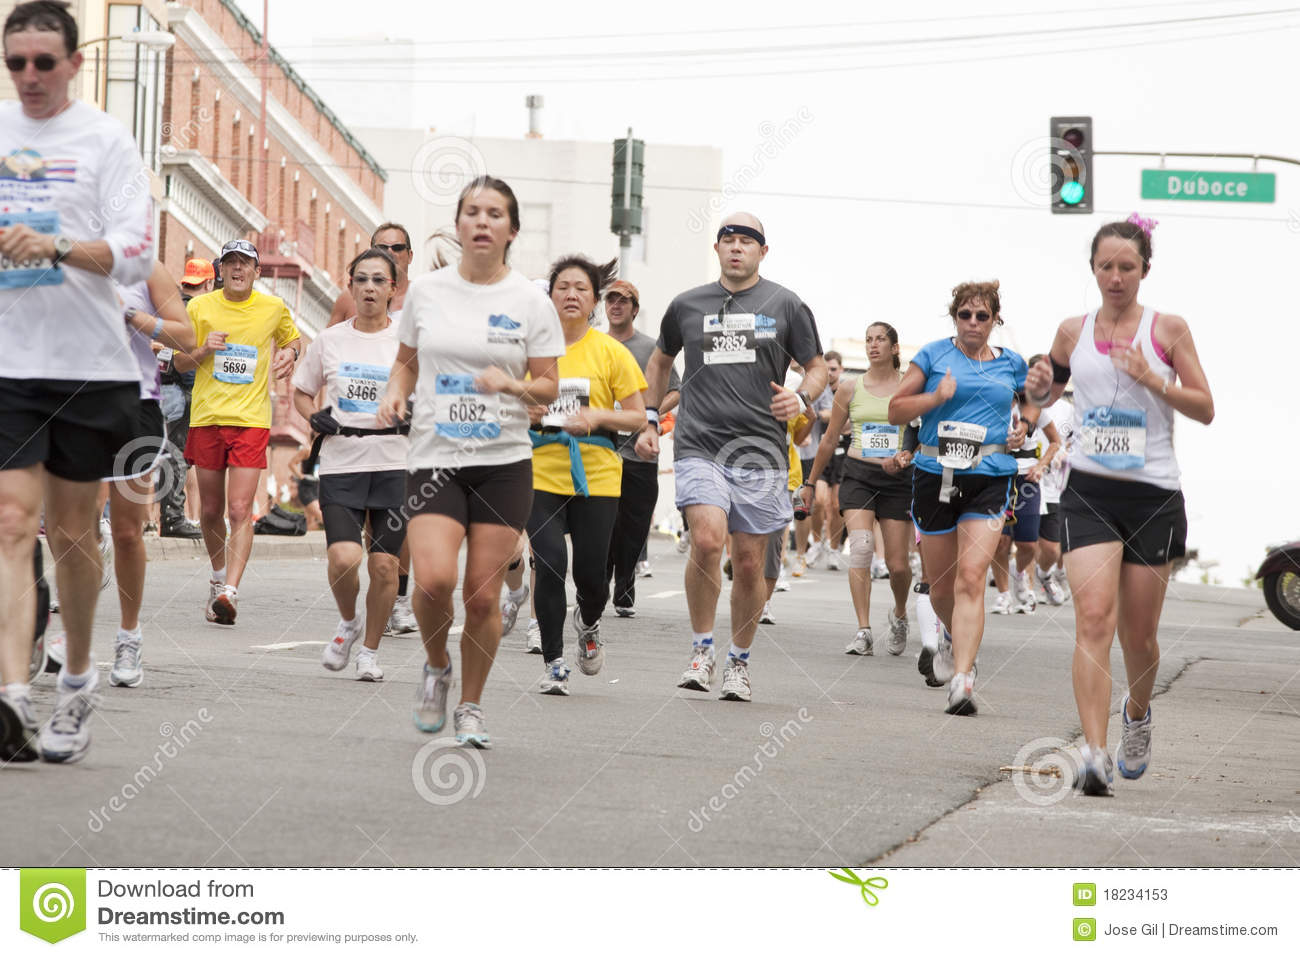 Jul 27,  · On Sunday, San Francisco will host its 41st annual marathon. According to NBC Bay Area, 27, runners are expected to turn out with approximately 50, spectators showing their support across.